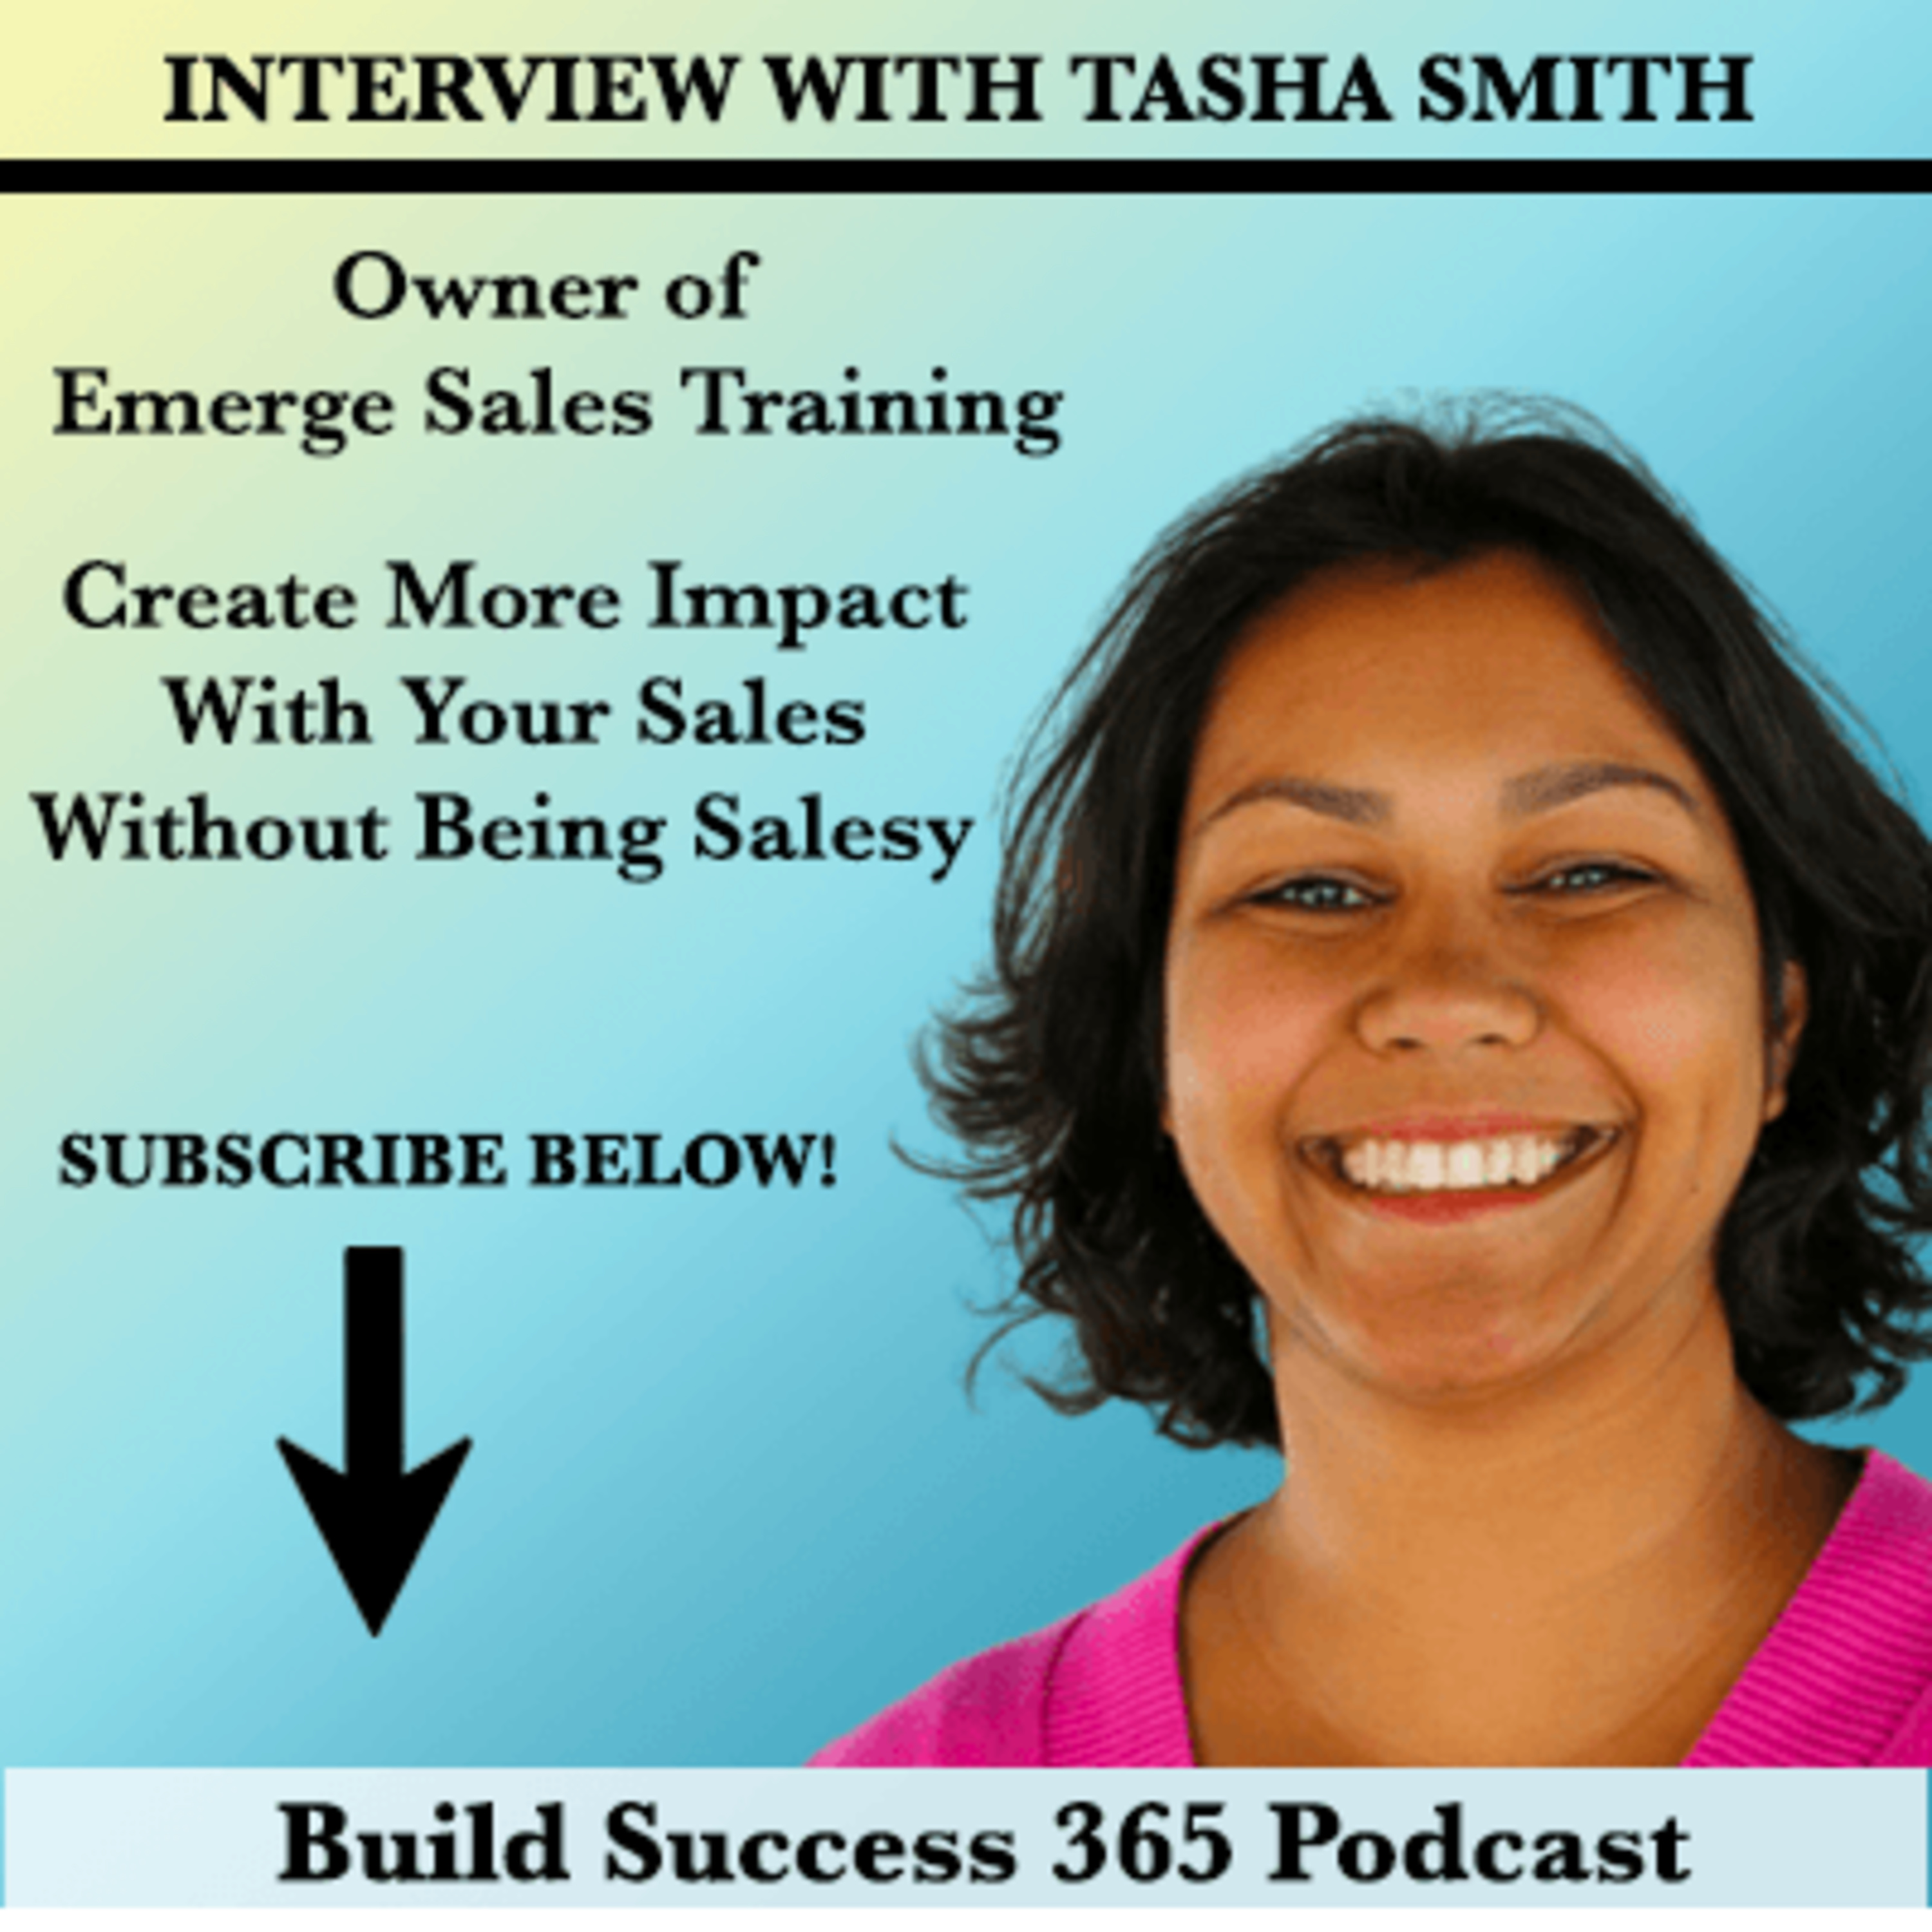 Interview with Tasha Smith Owner of Emerge Sales Training